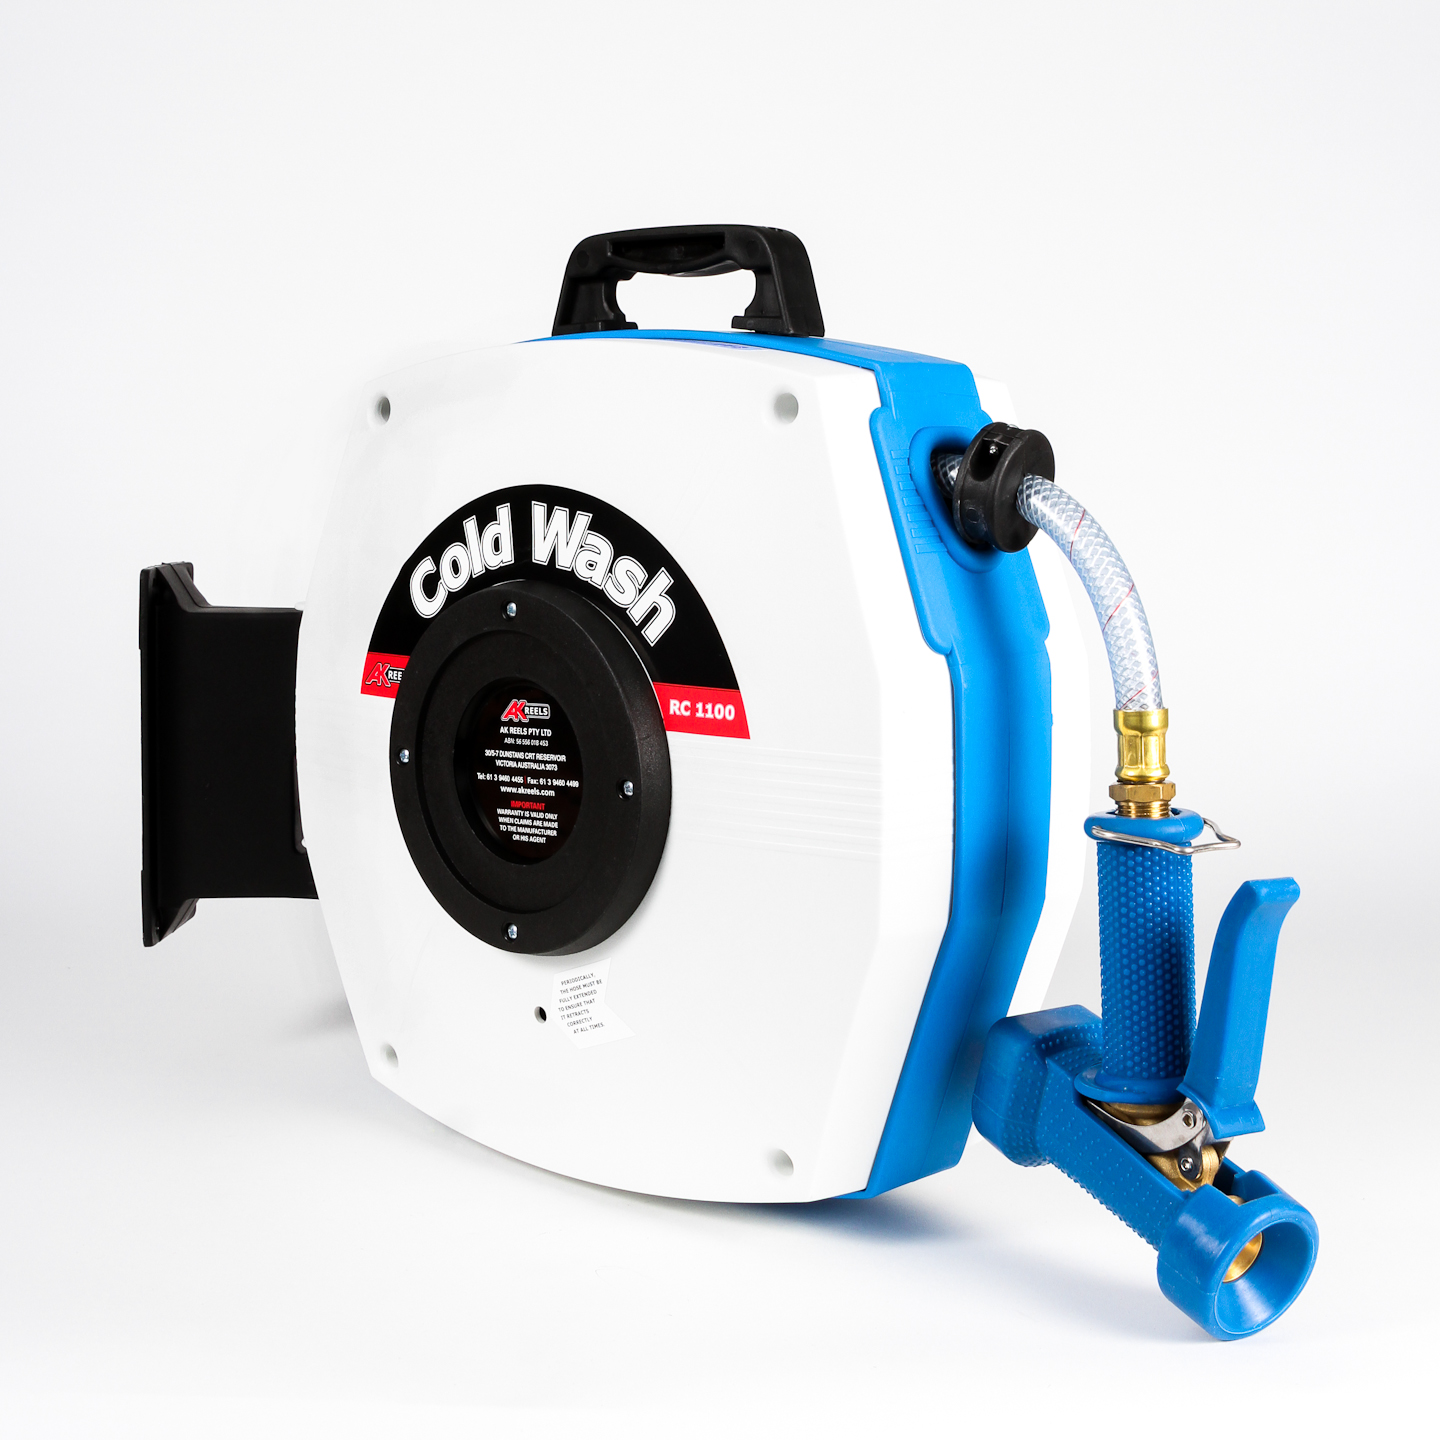 Cold Wash 15M reel Kit